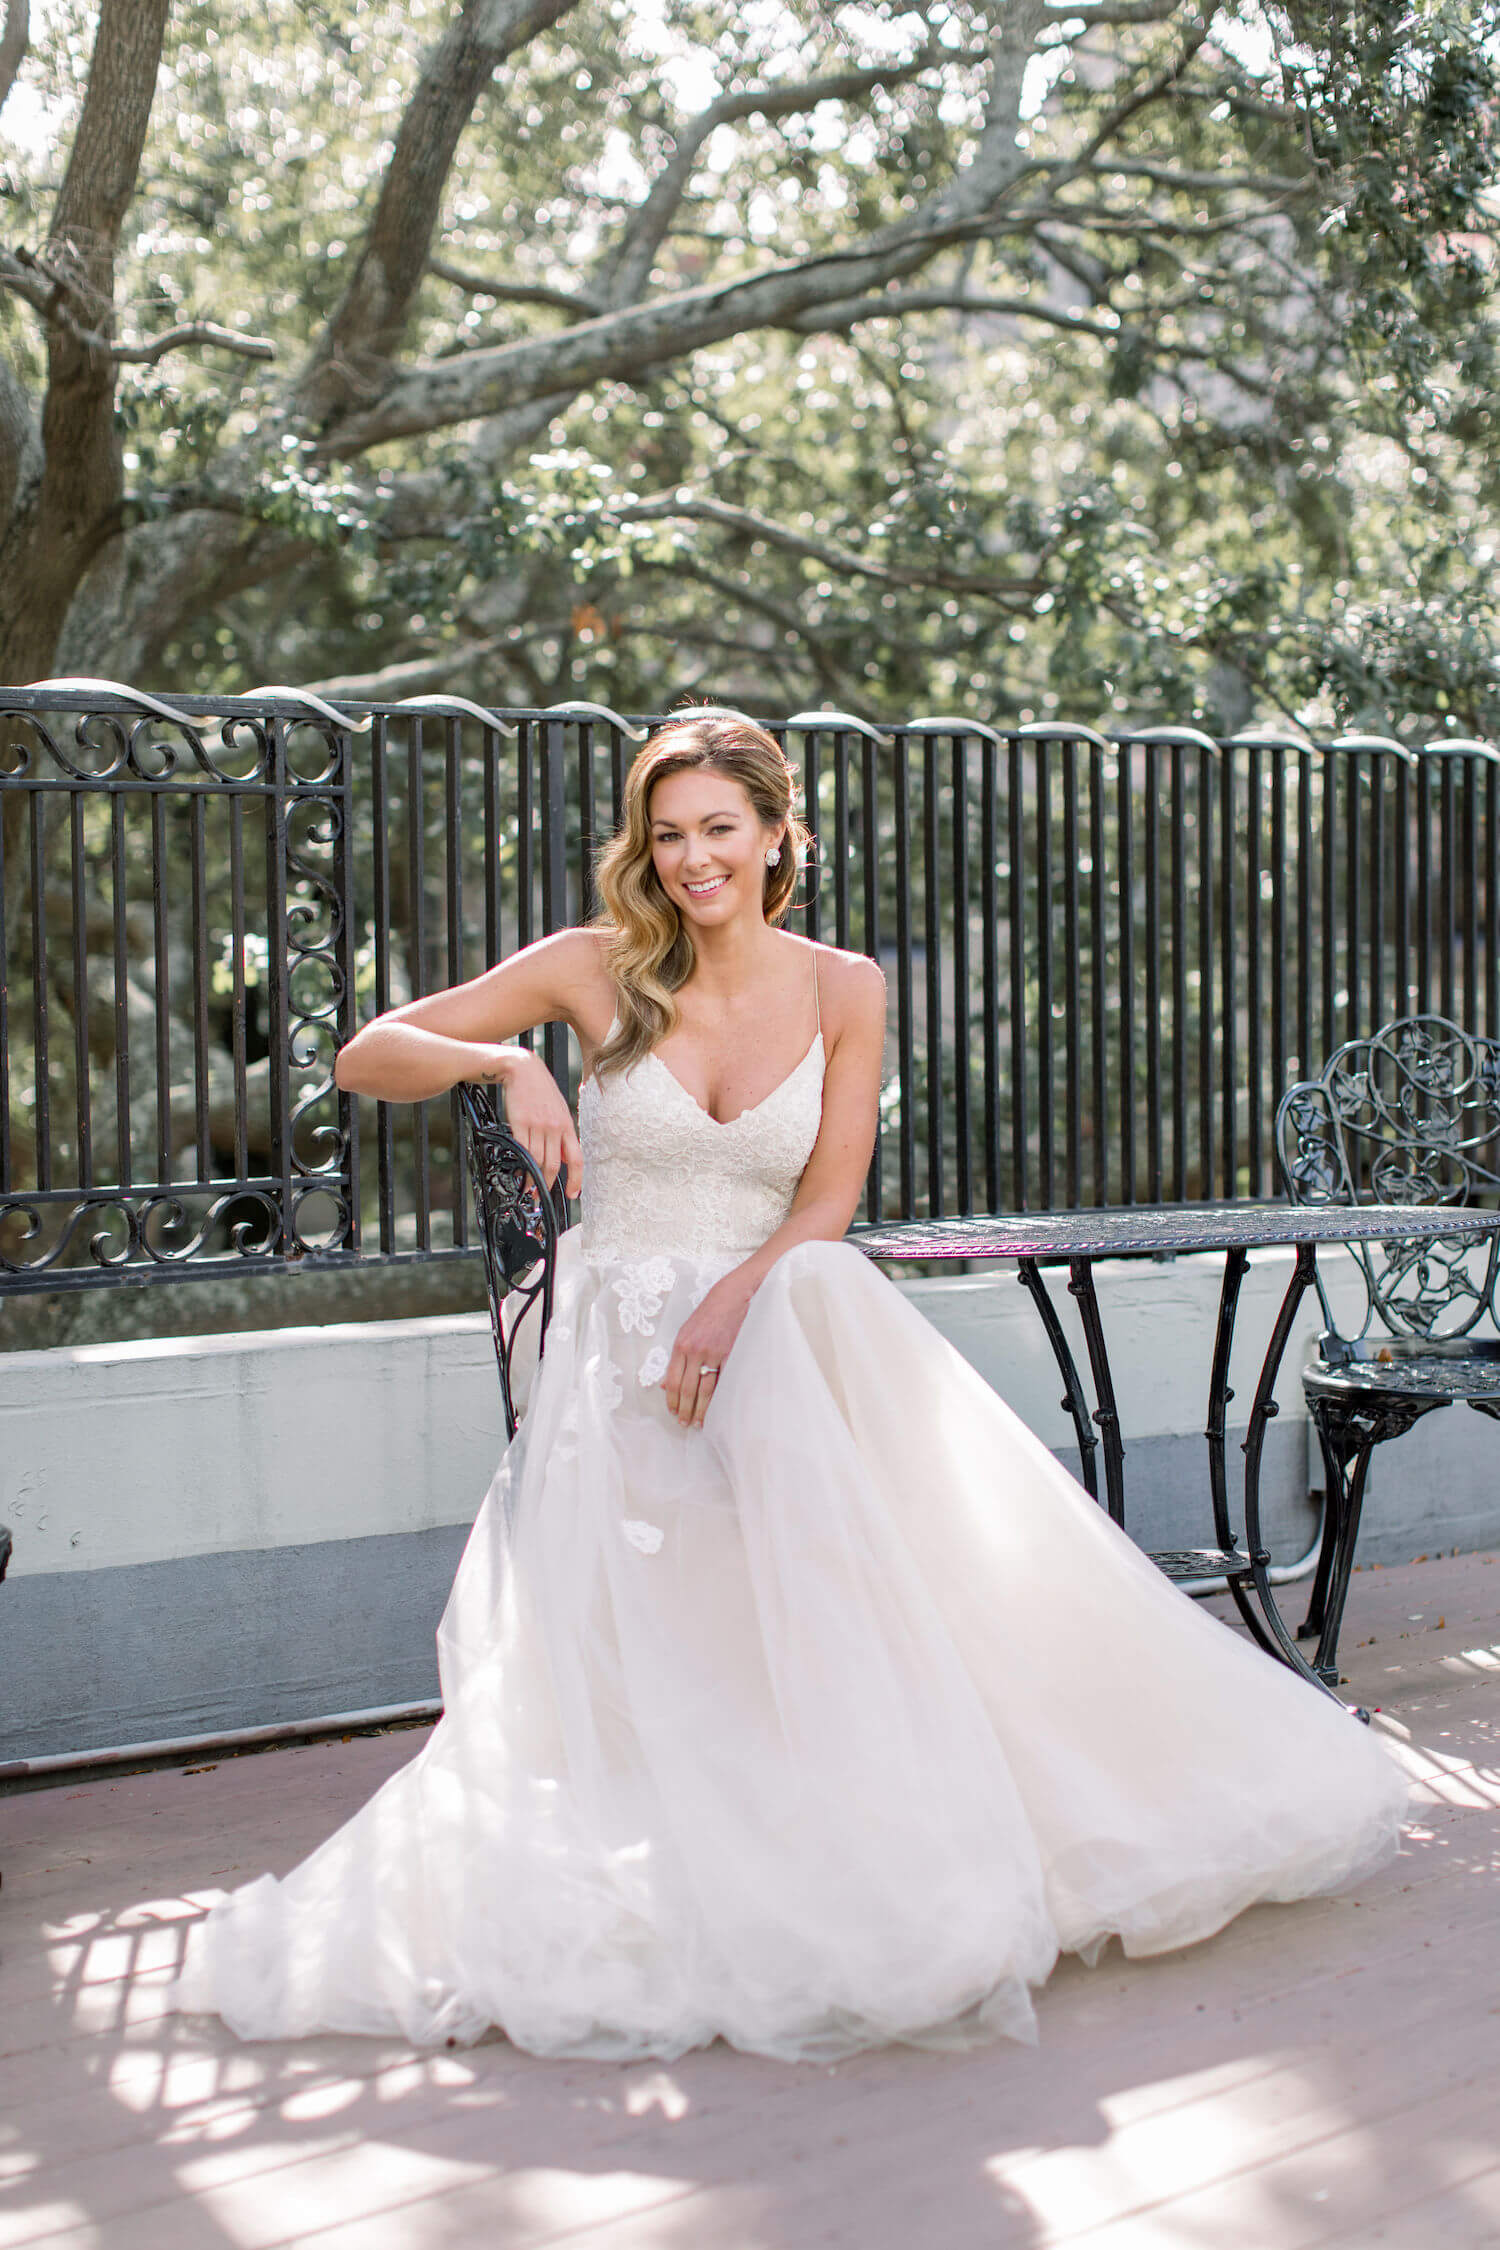 Chelsea Meissner in Charleston SC wearing Monique Lhuillier gown.jpeg